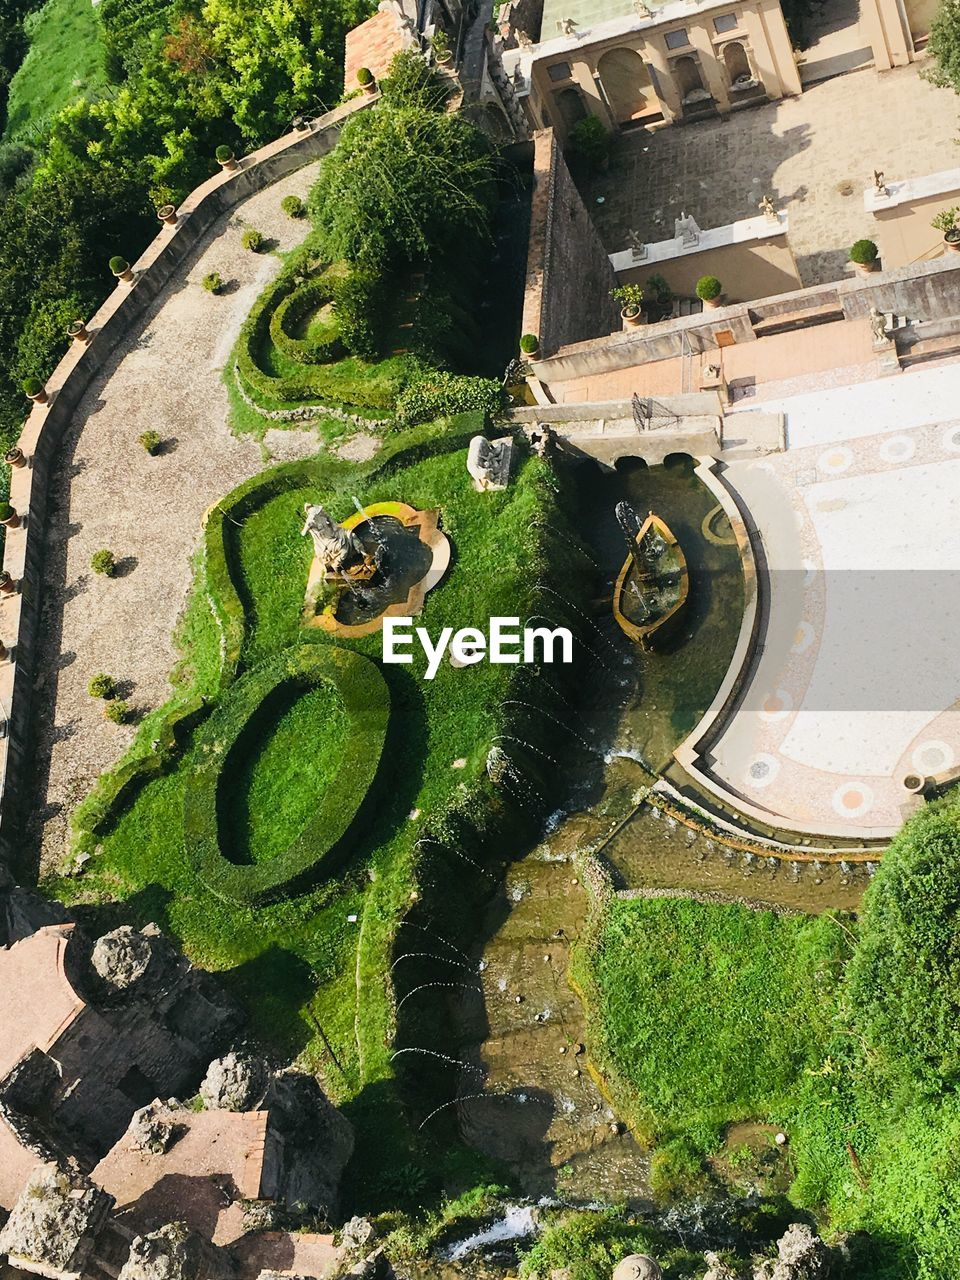 plant, high angle view, day, green color, nature, architecture, water, no people, built structure, grass, sunlight, growth, outdoors, old, garden, building exterior, moss, tree, formal garden, wheel